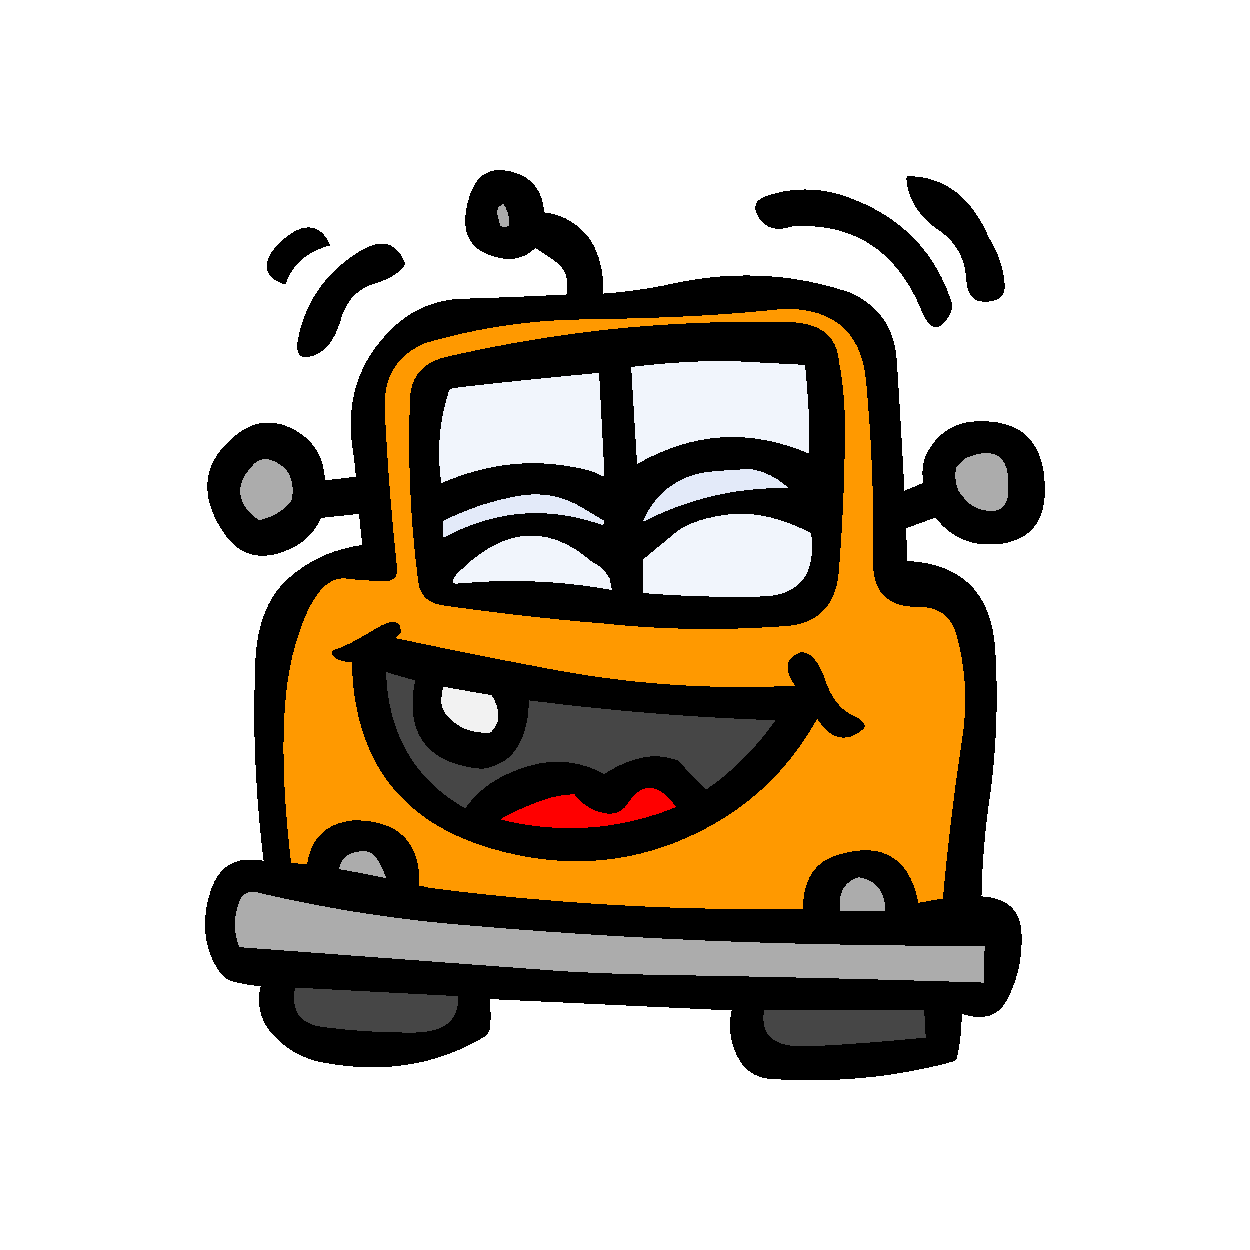 Car Smileys Stickers messages sticker-0